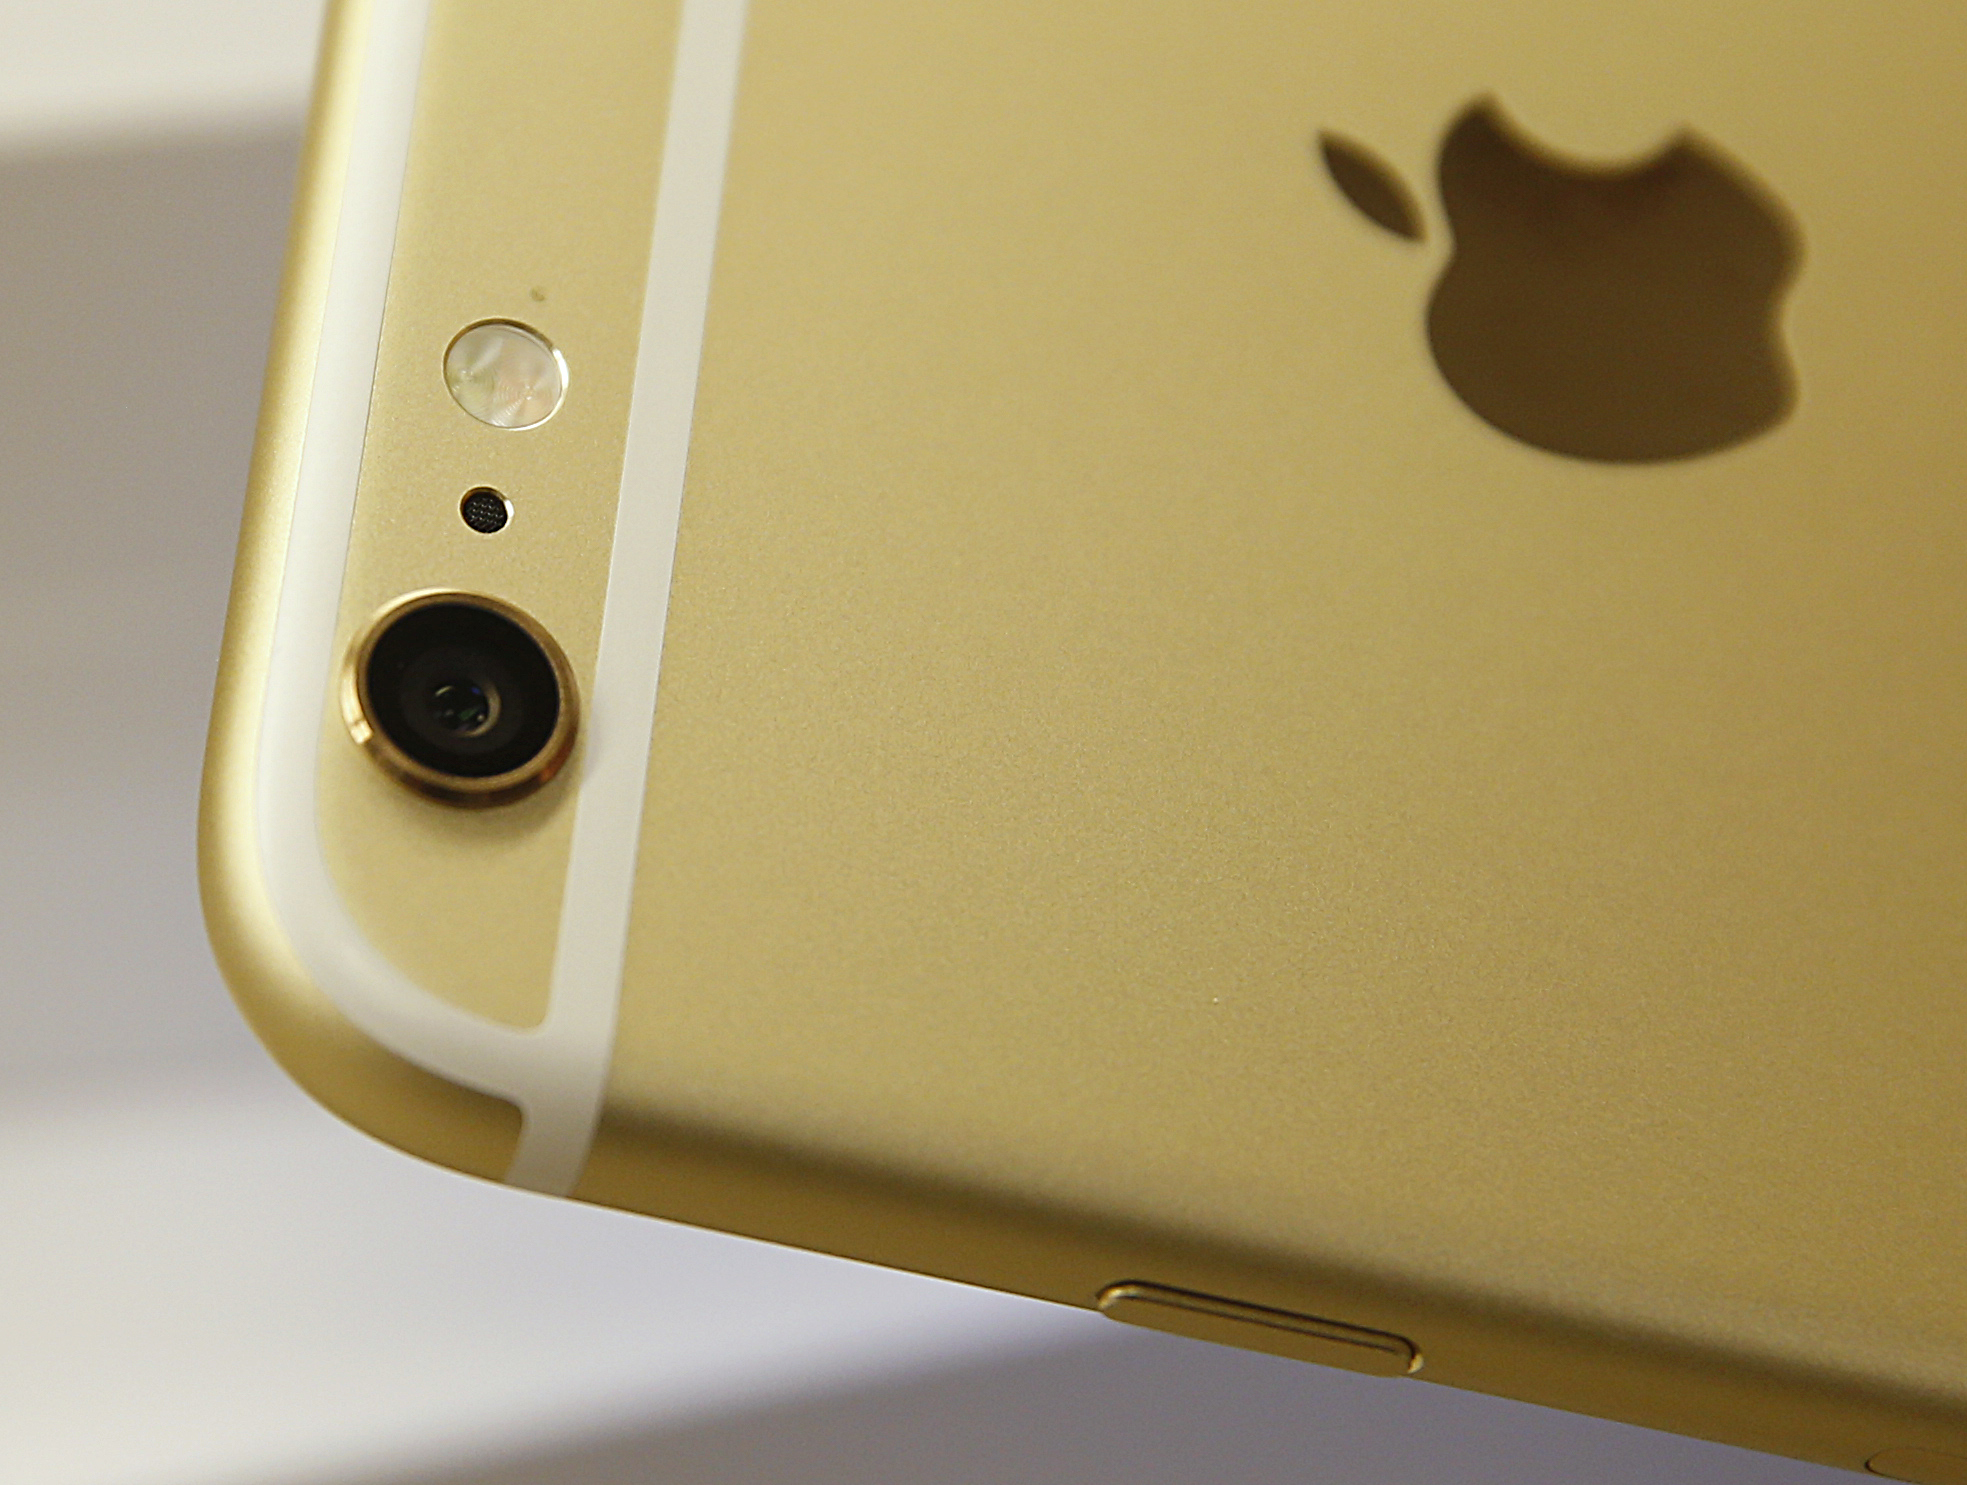 The camera and flash of an Apple iPhone 6 Plus gold, is shown here at a Verizon store on September 18, 2014 in Orem, Utah.